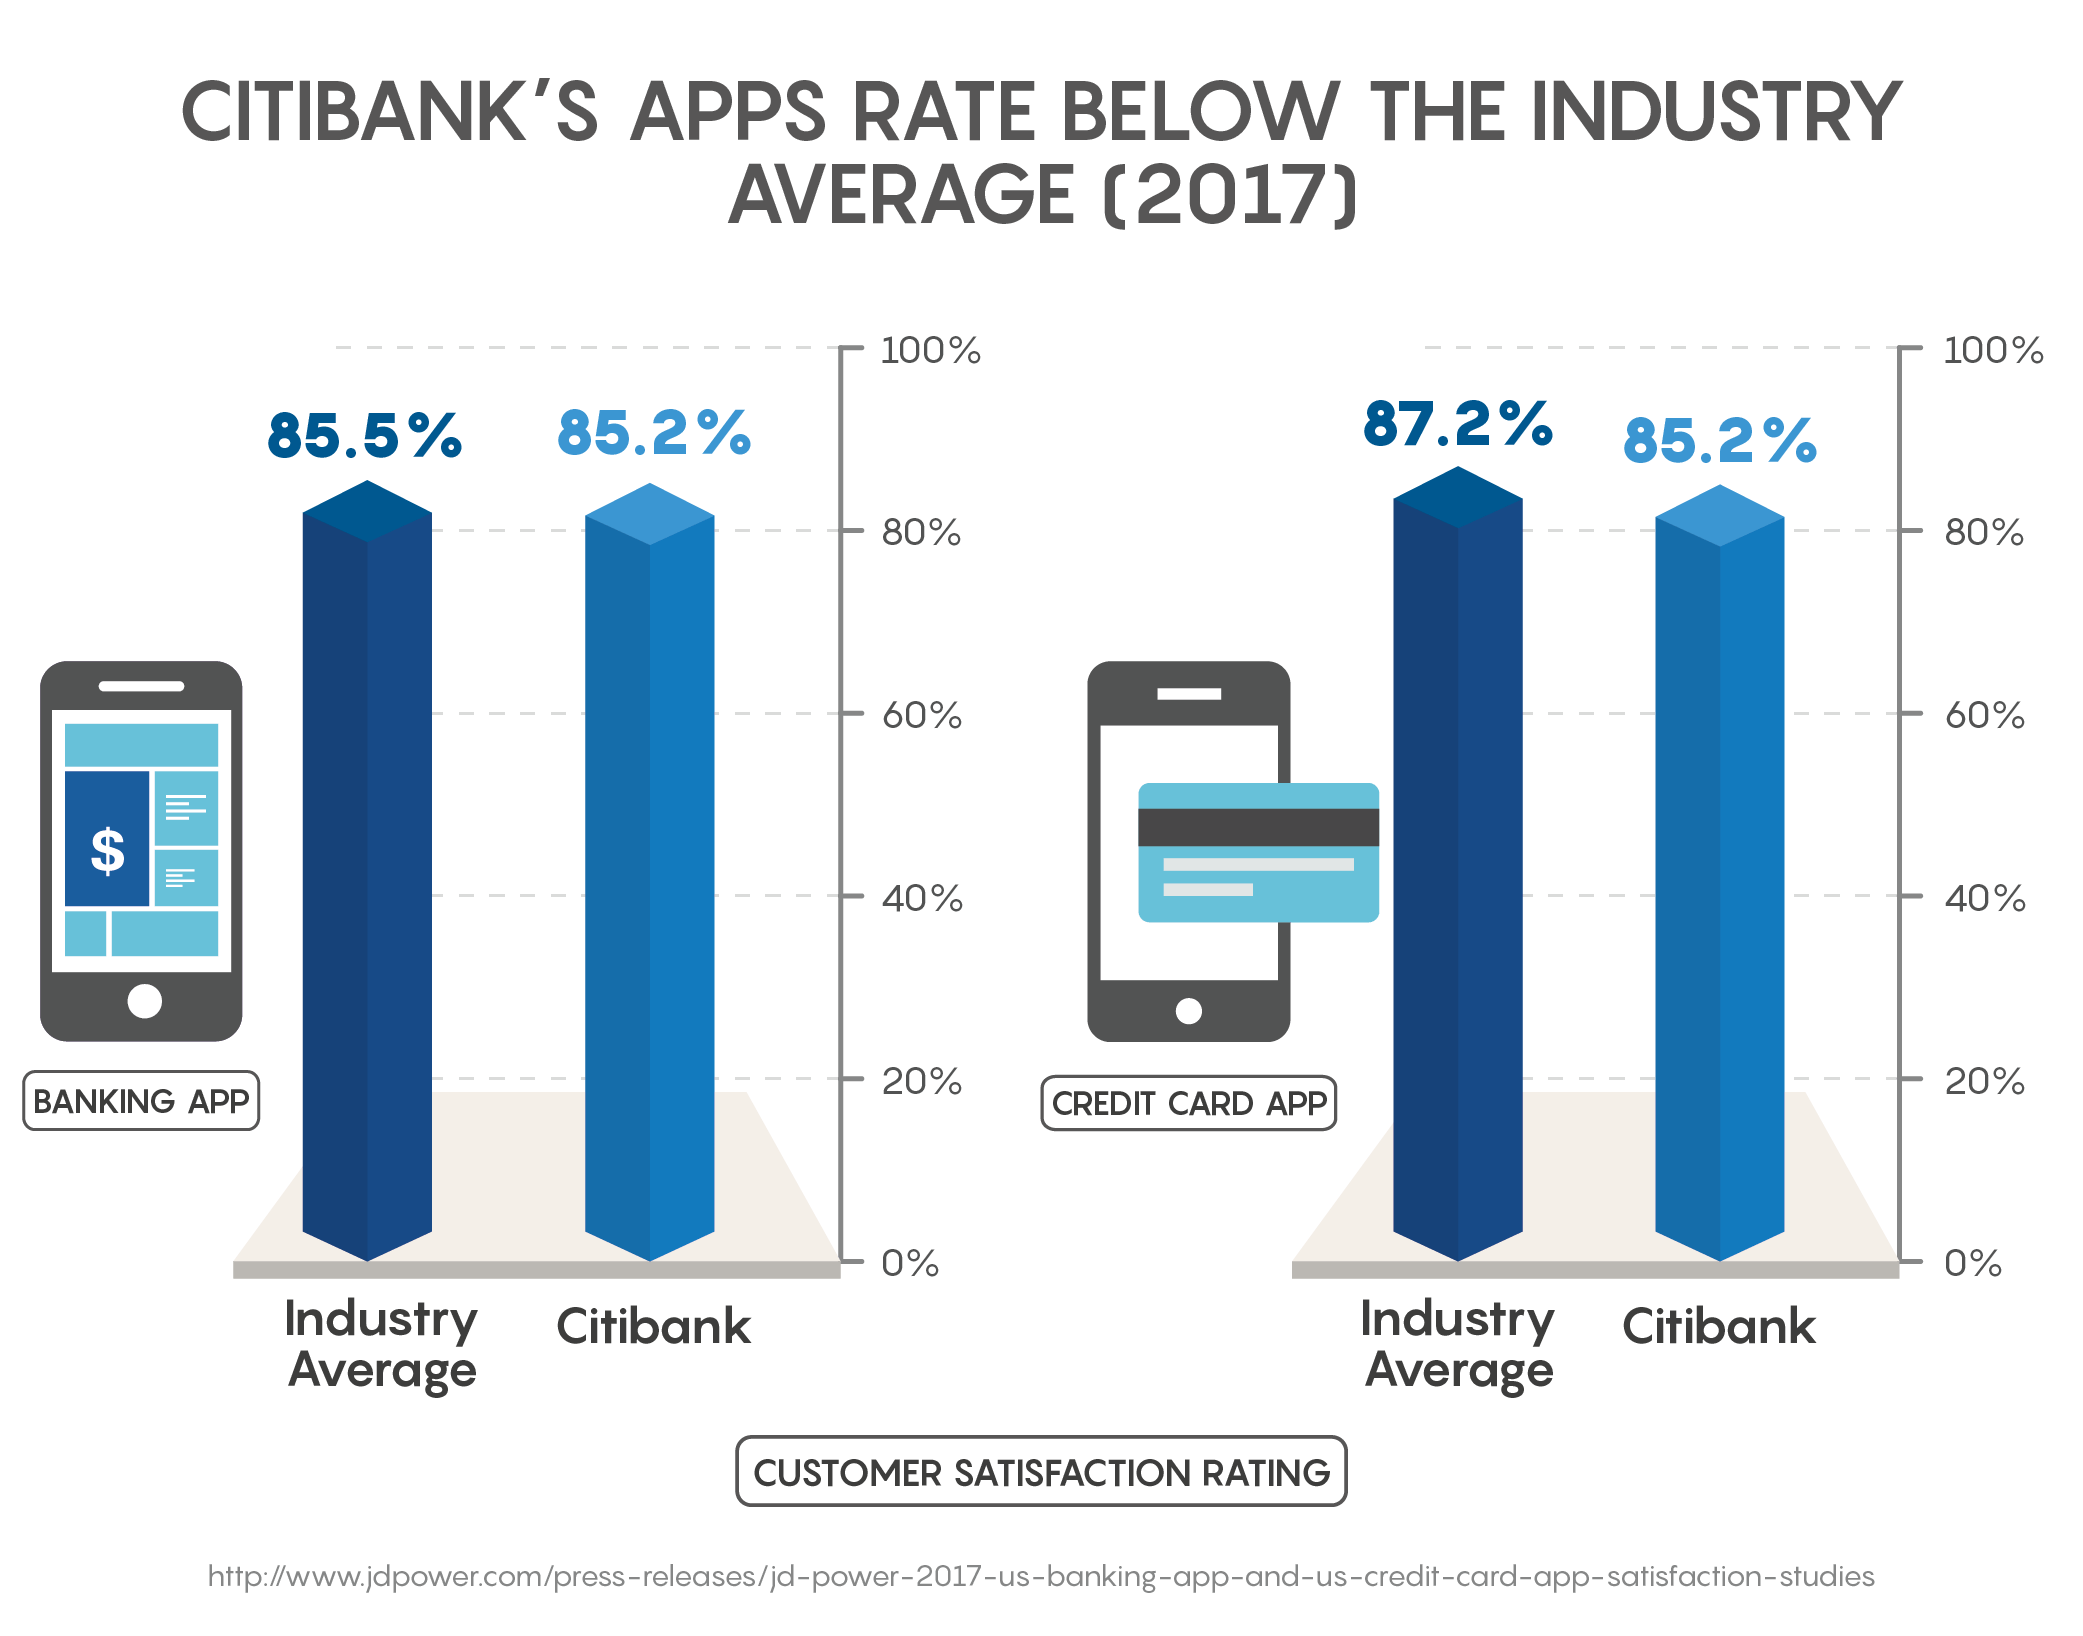 Citibank's Apps Rate Below the Industry Average (2017)